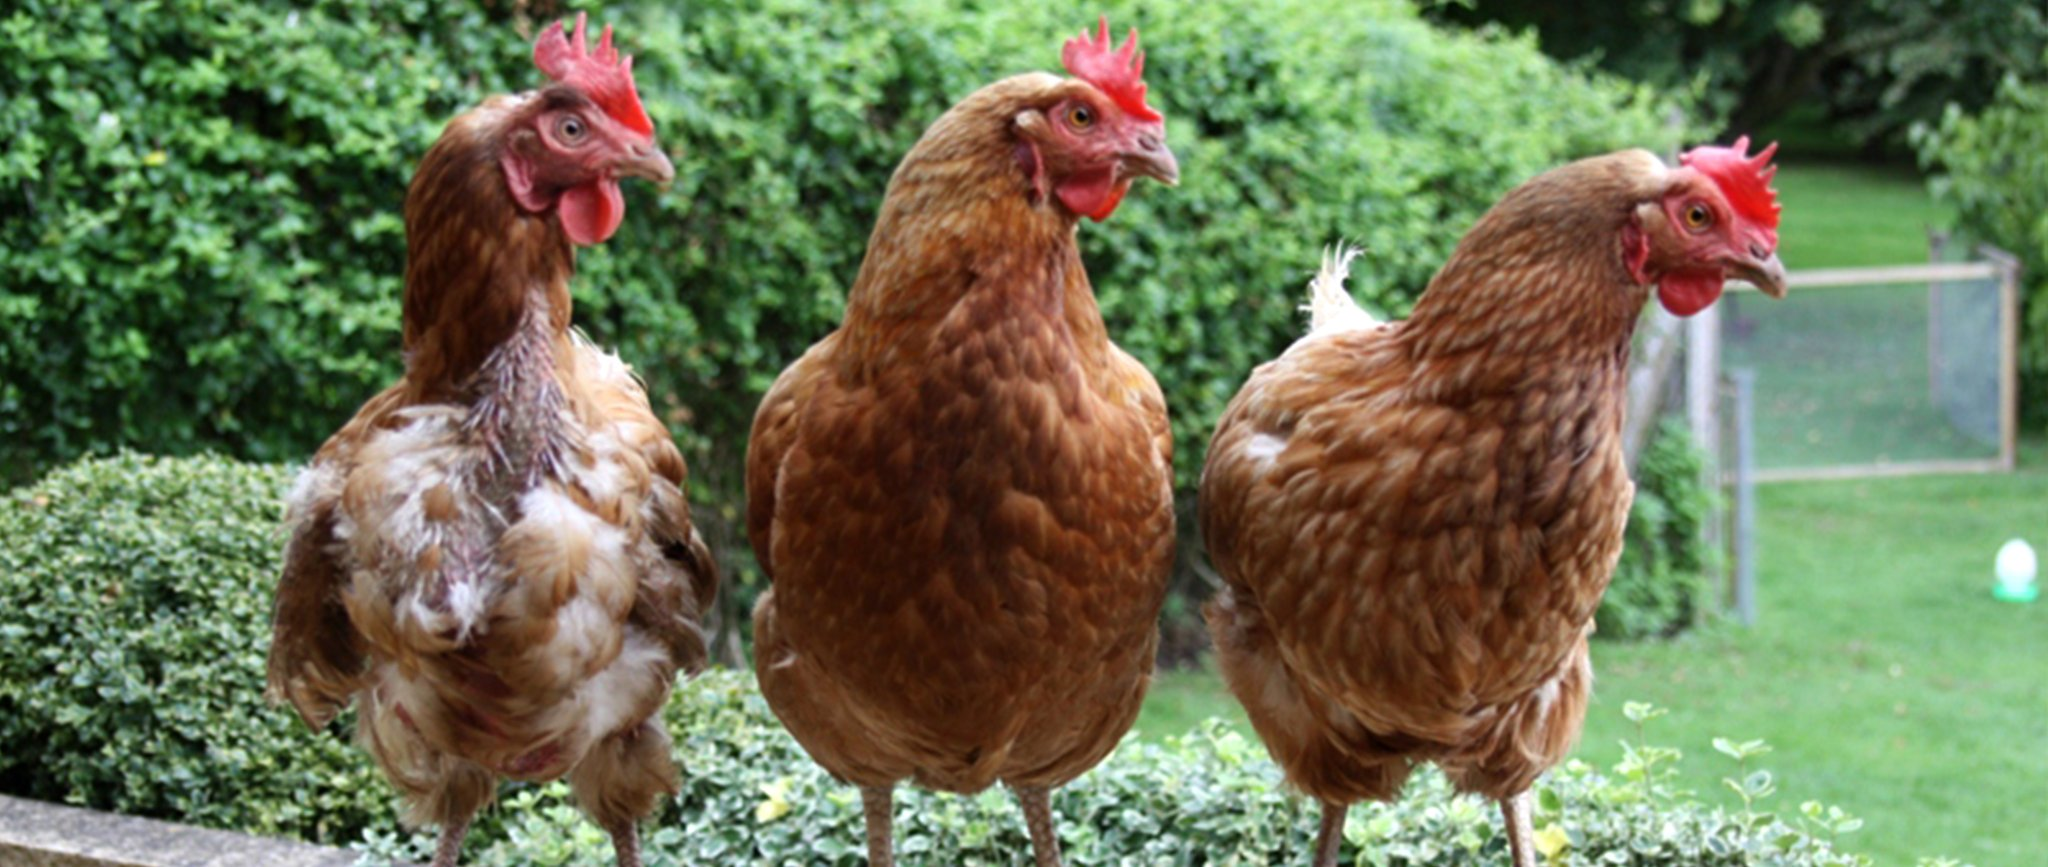 Urban hens up for discussion at tonight's city council meeting